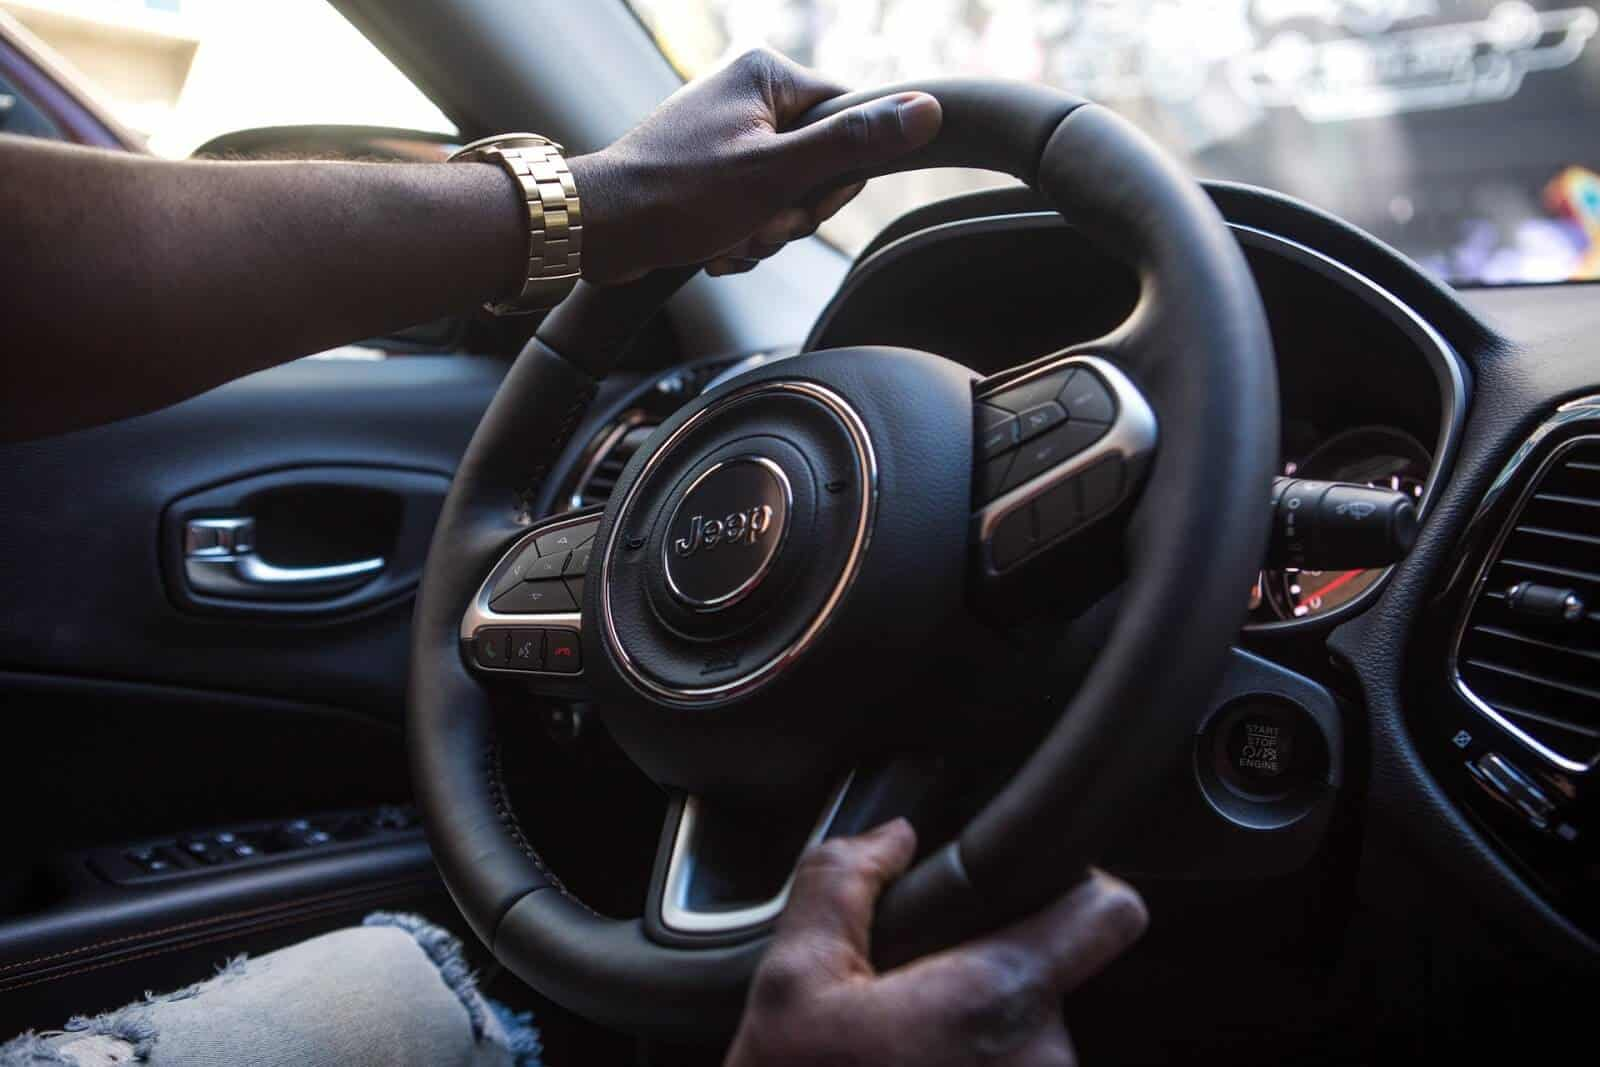 Person's hands on a Jeep steering wheel